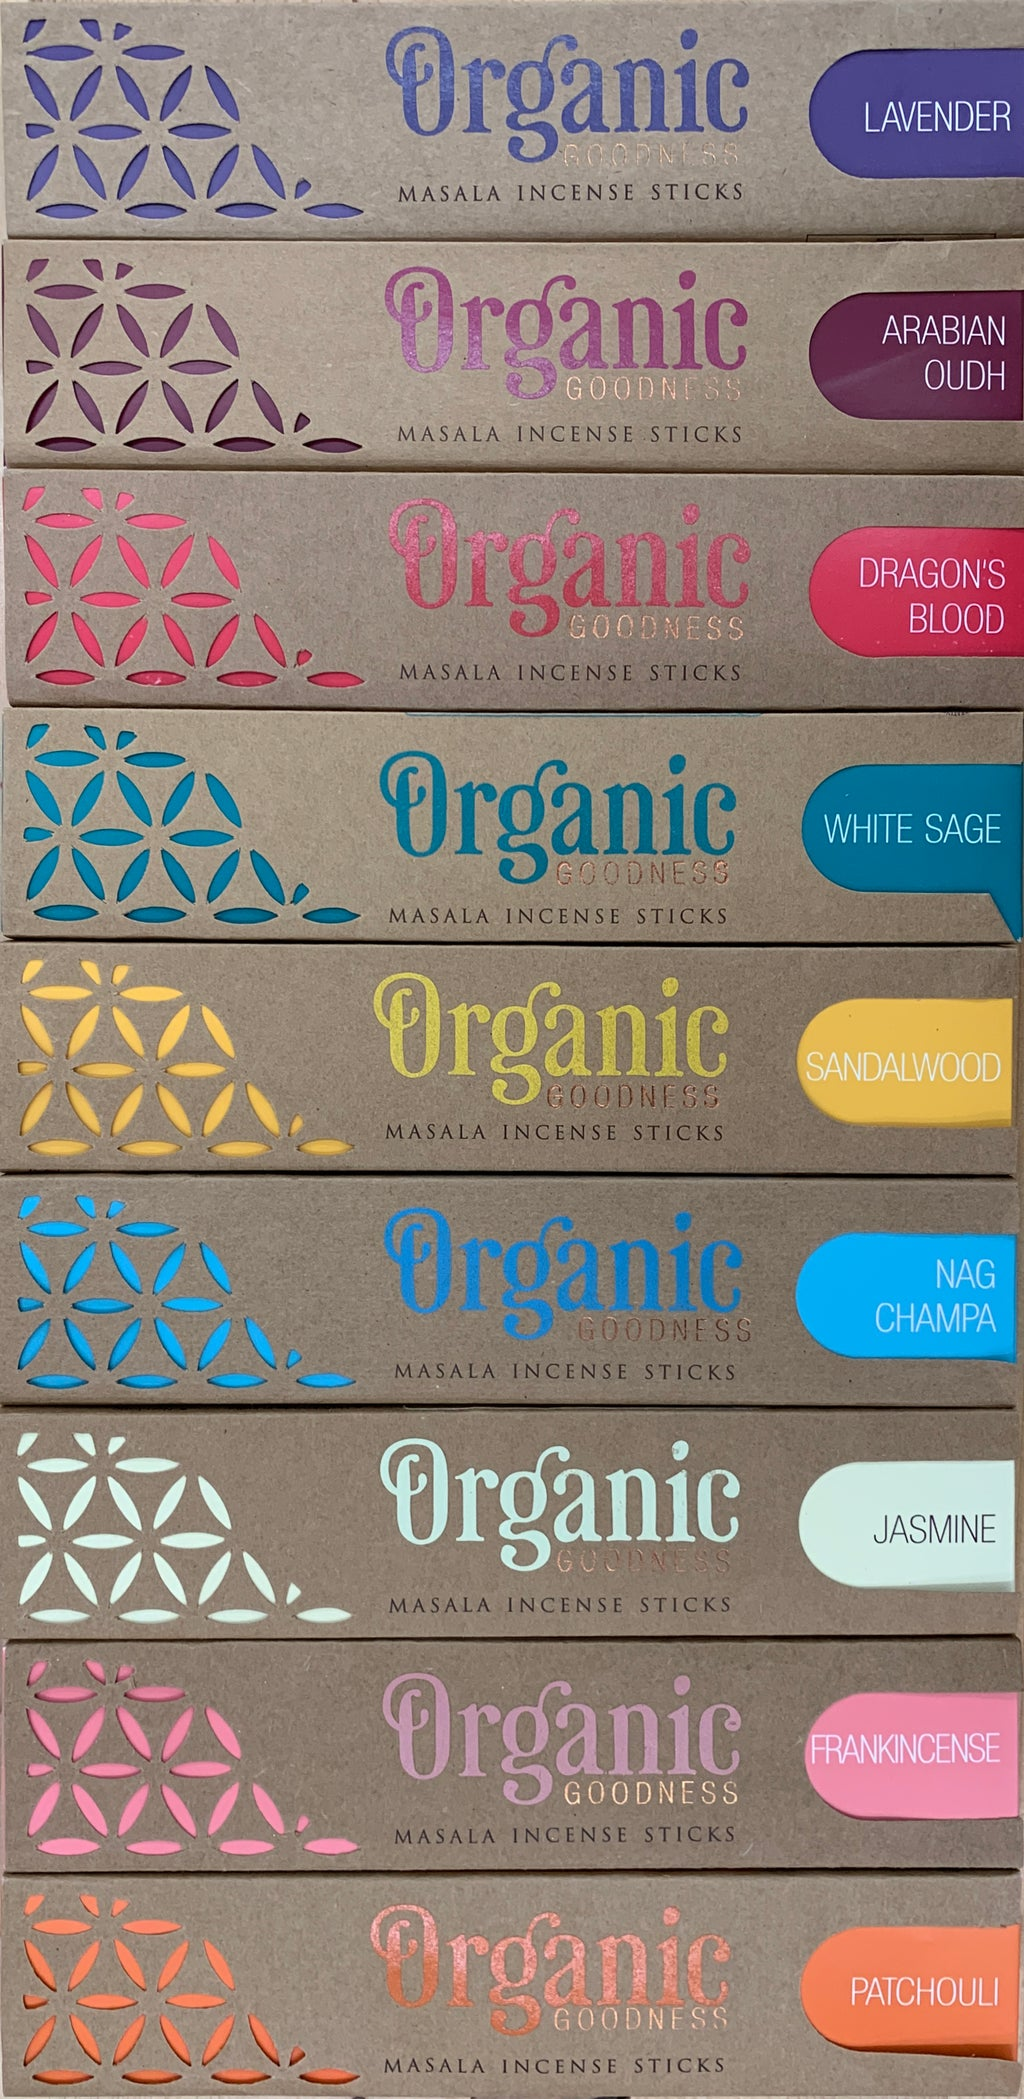 Organic Goodness - Masala Incense Sticks